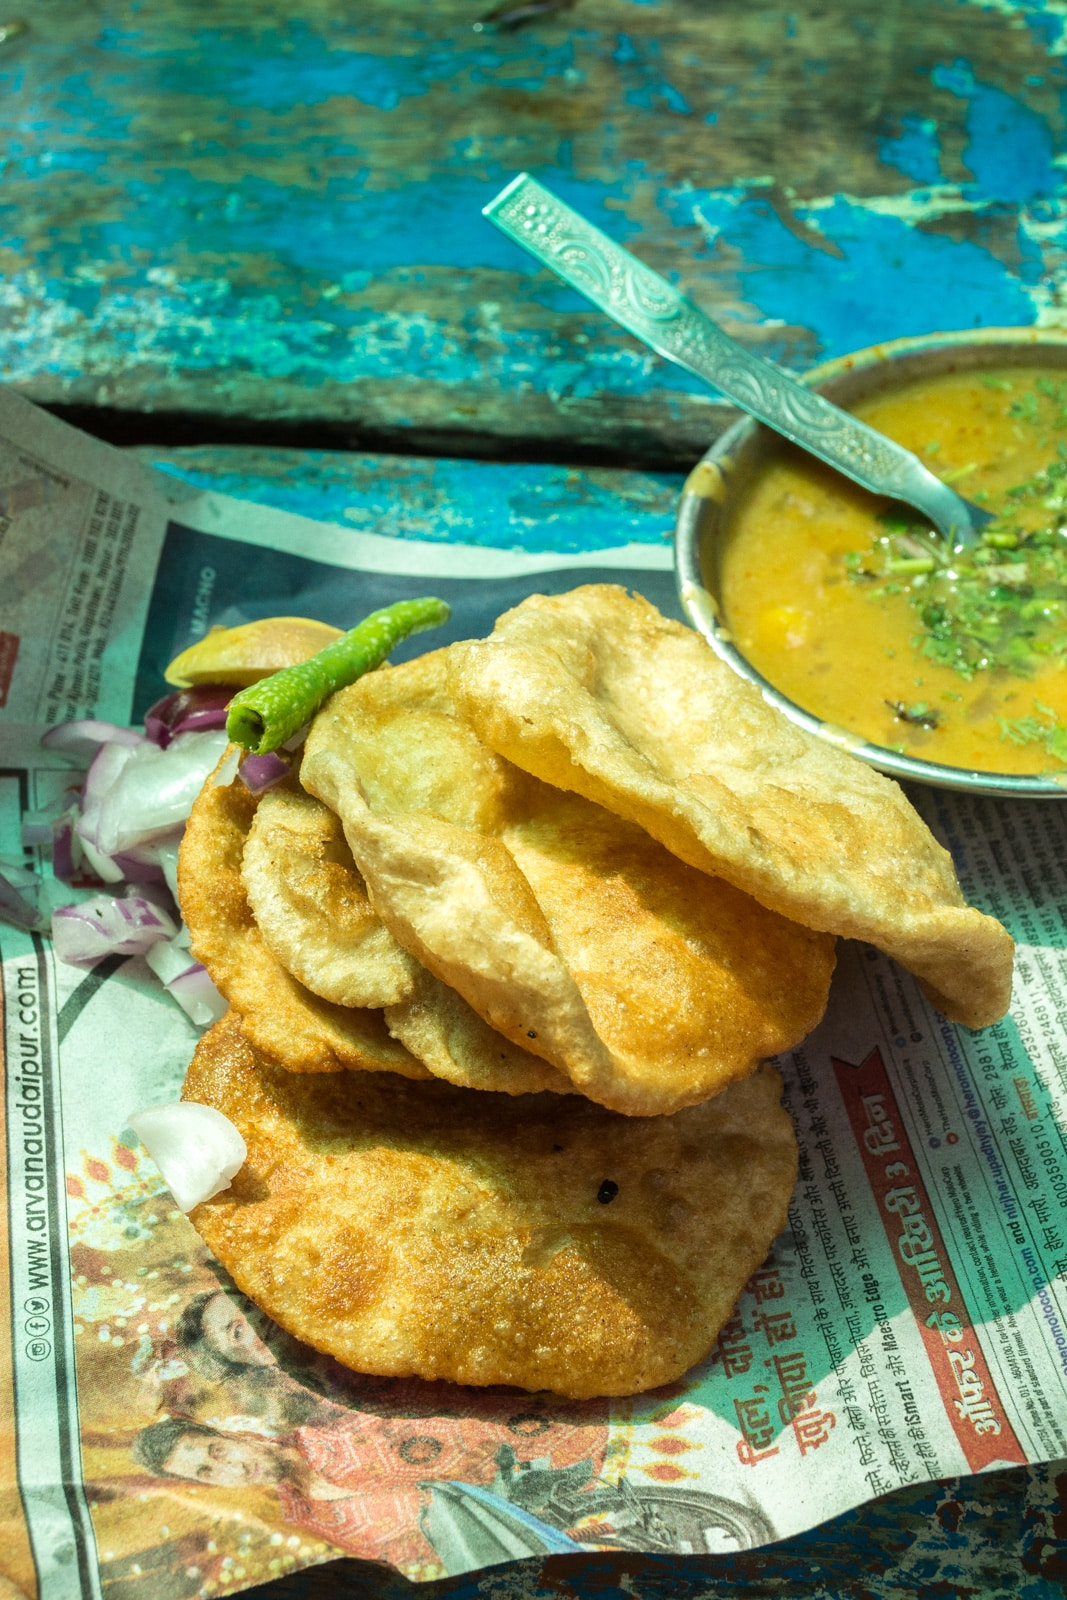 Fresh puri on a newspaper on the streets of Udaipur, Rajasthan state, India.